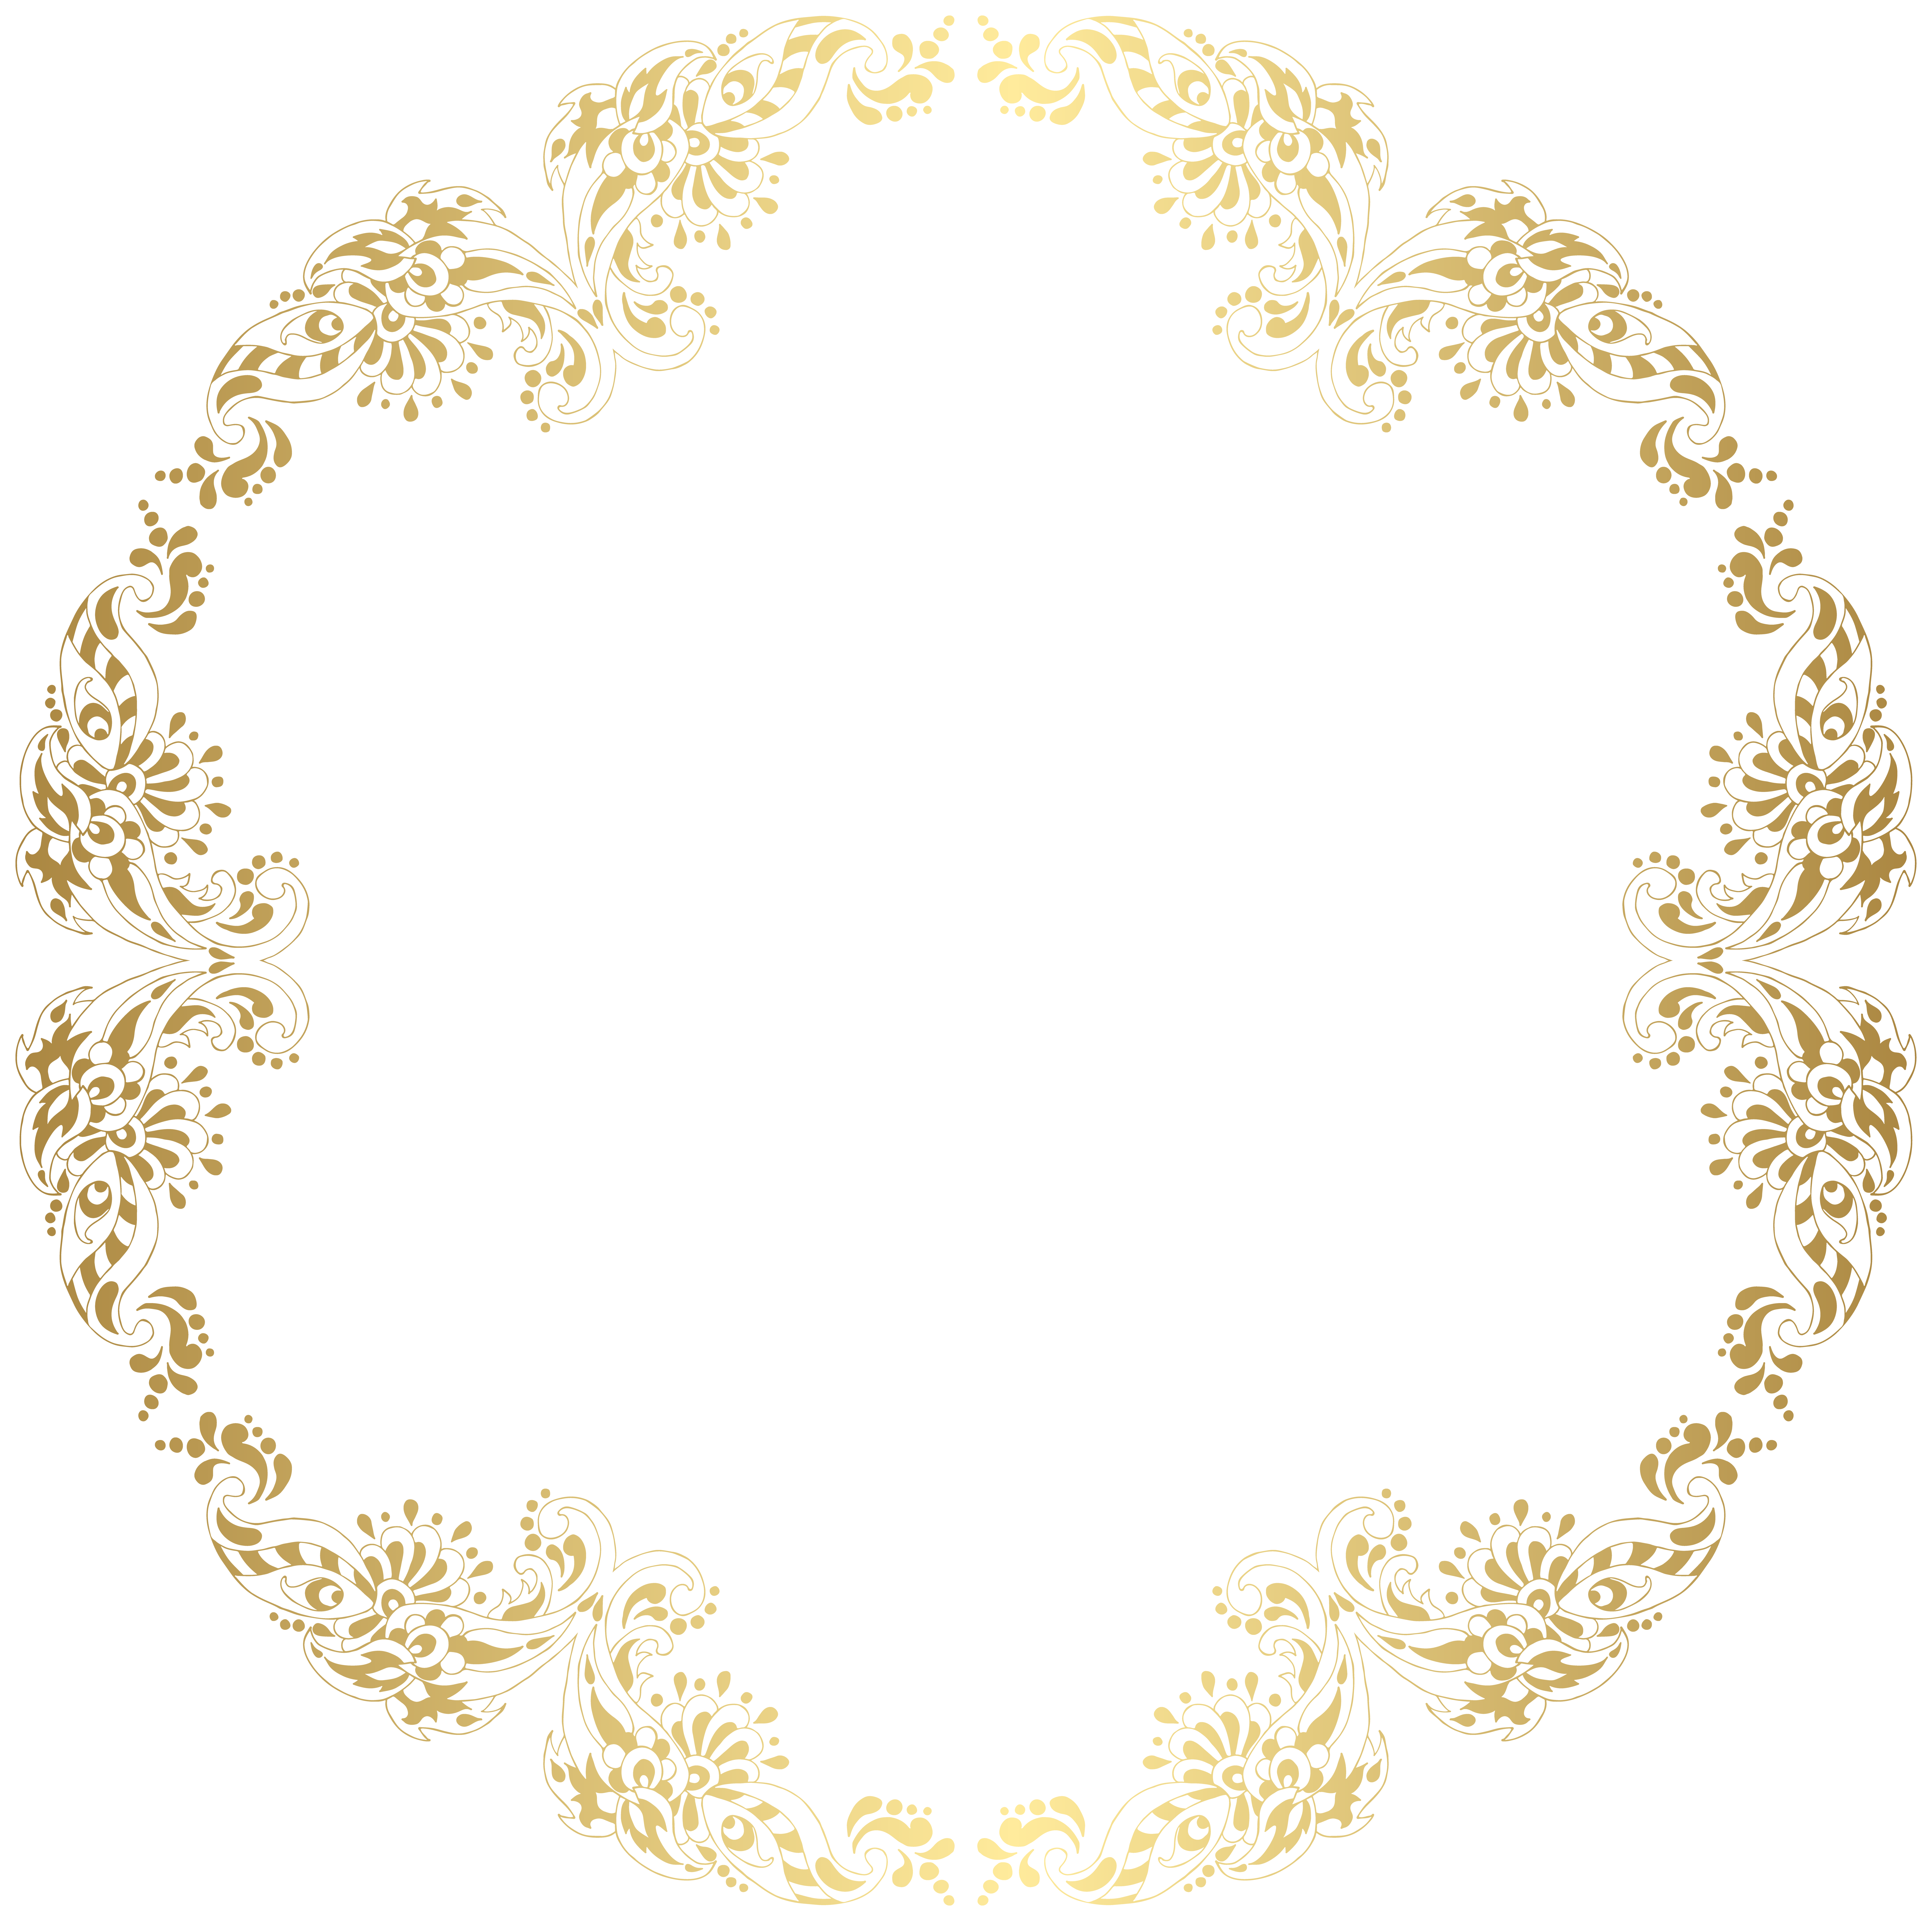 Floral round border png. Garland clipart gold